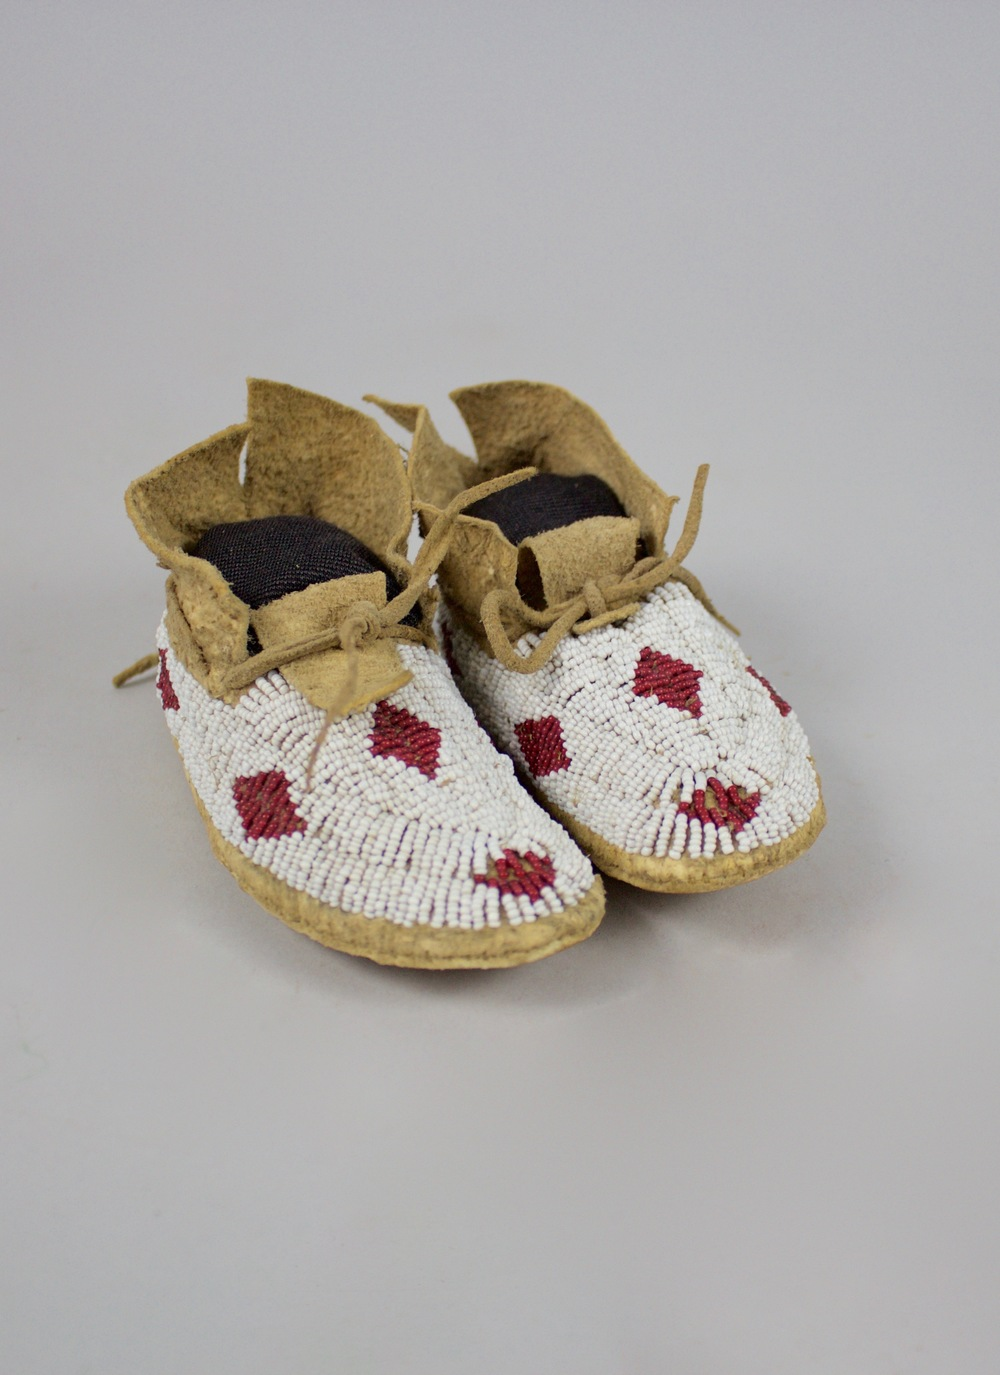 Cheyenne Child's Moccasins   c.1870  BV0223